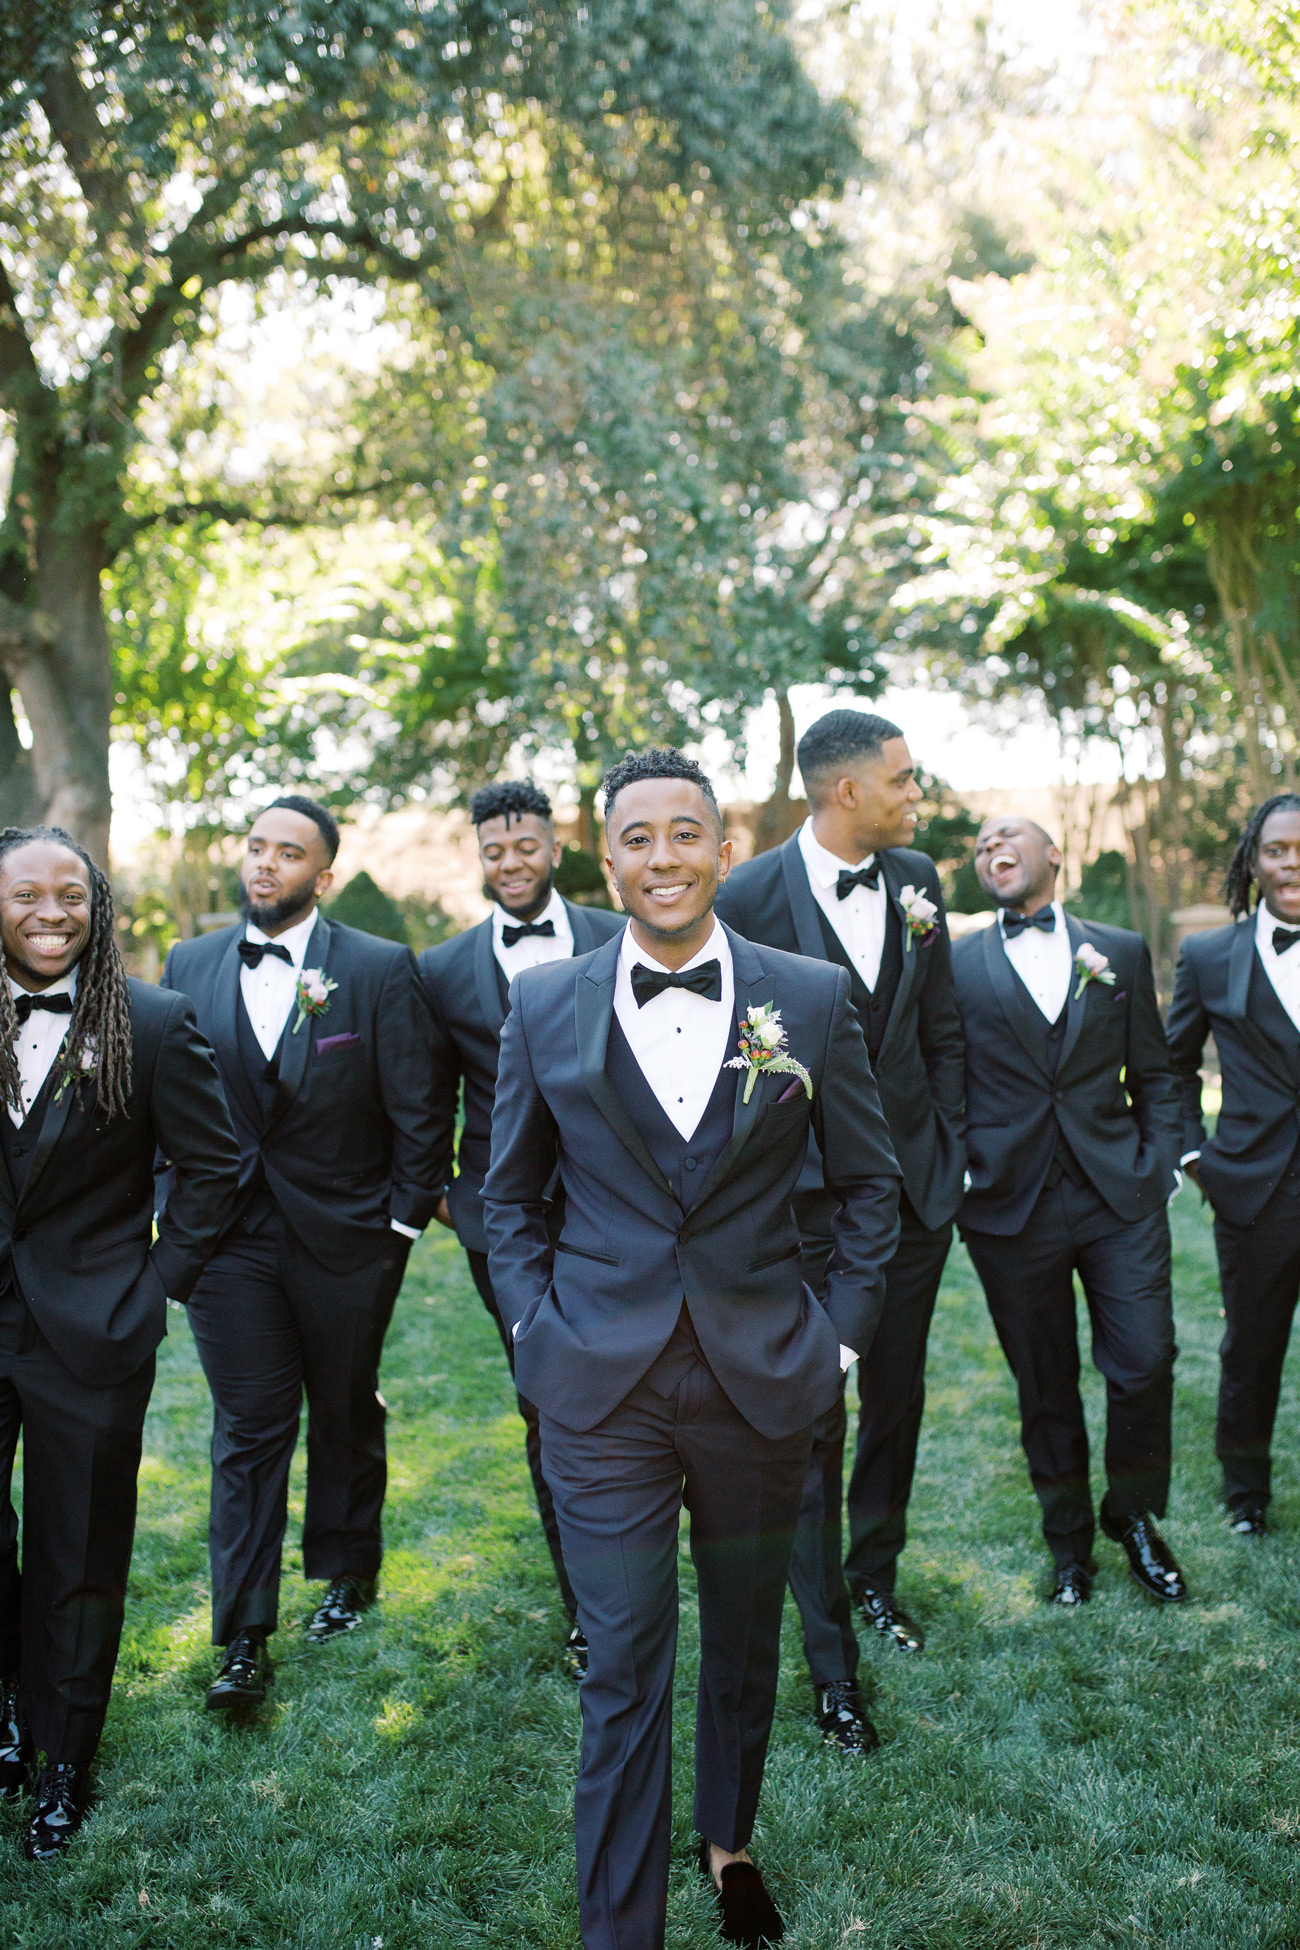 Braxton with groomsmen